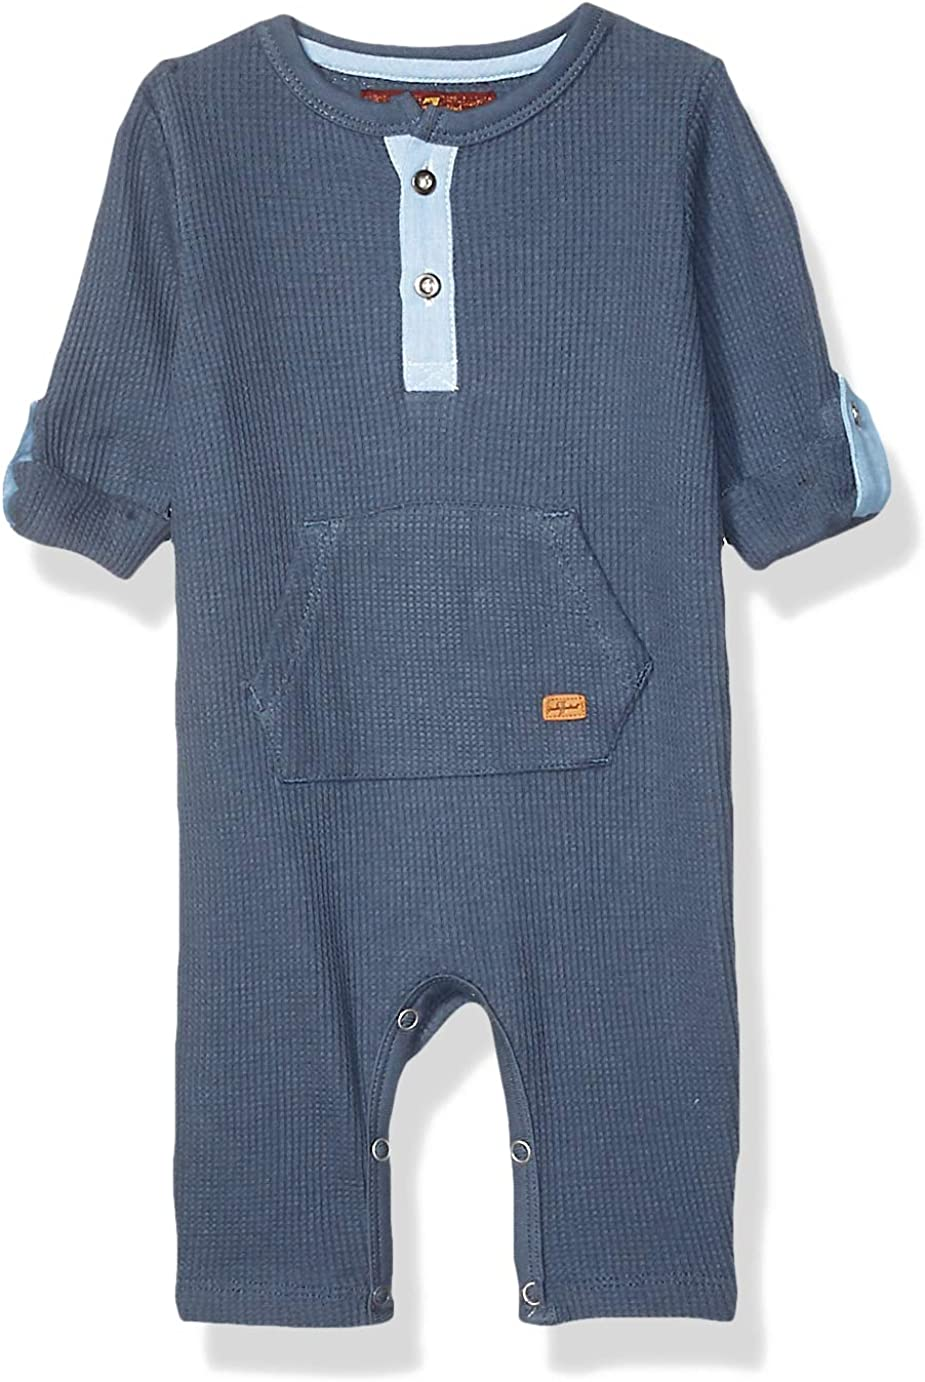 7 For All Mankind Baby Boys Coverall